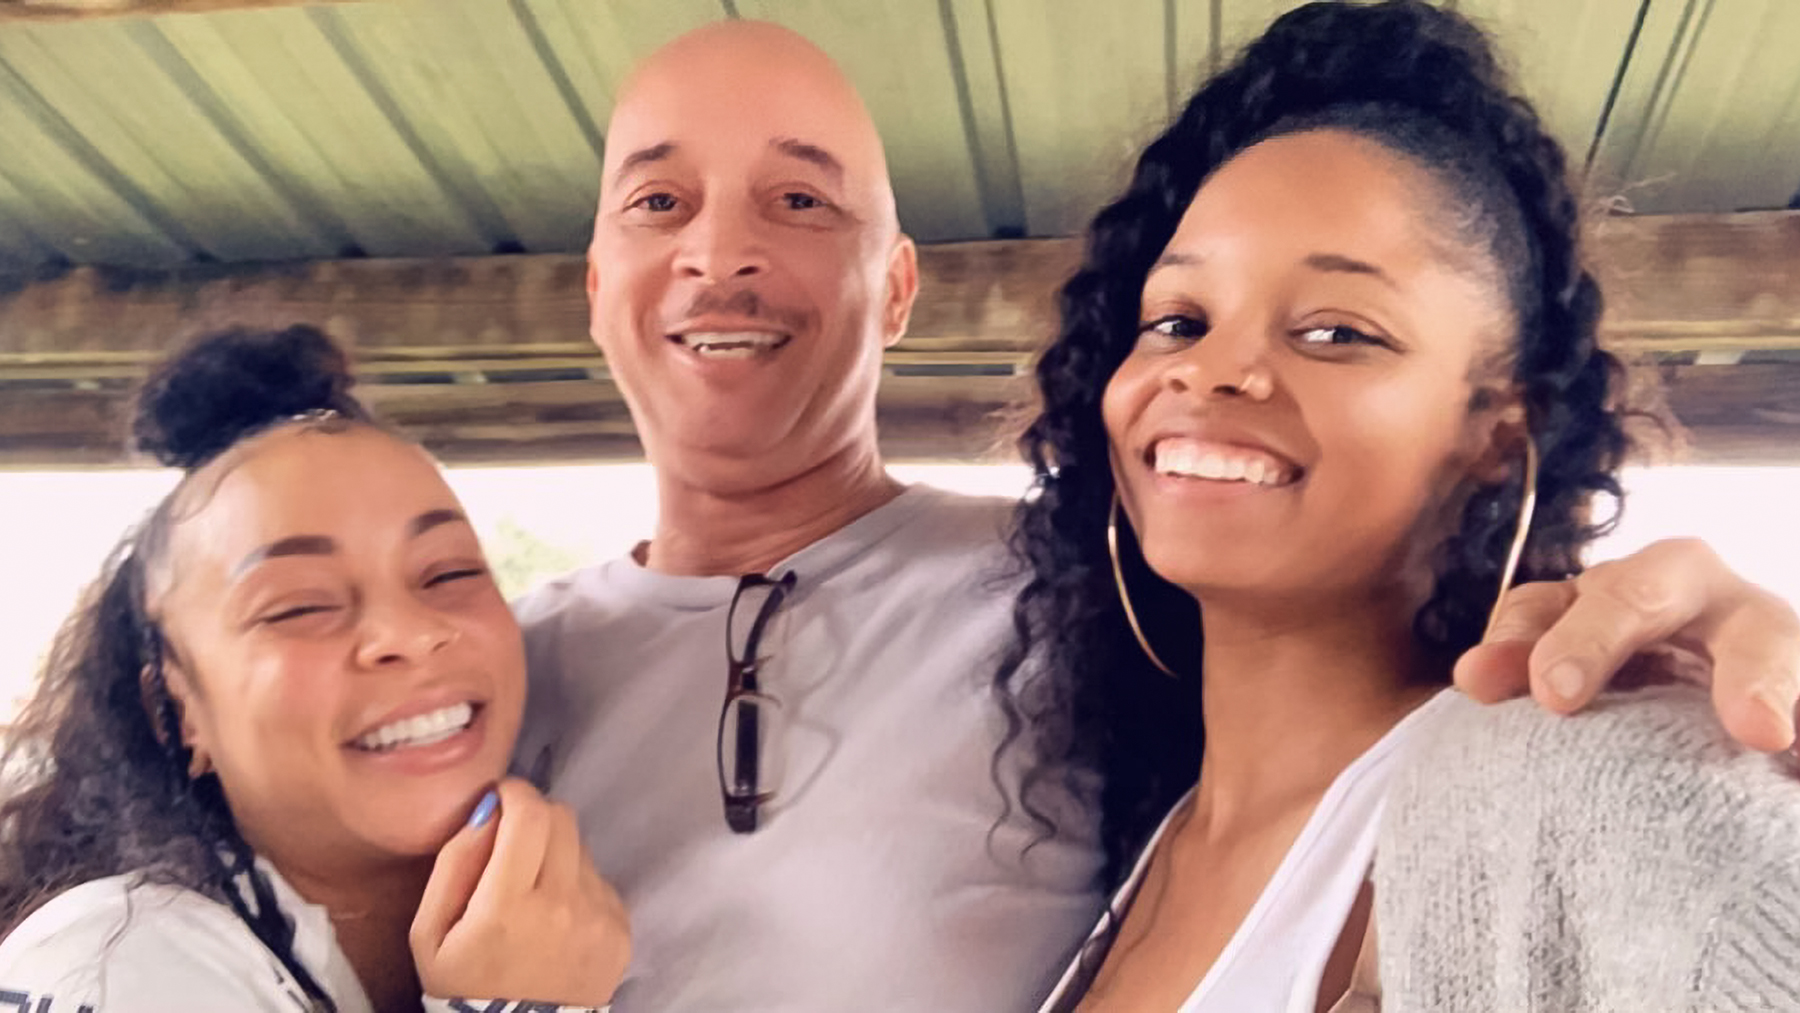 Jenae with her father, Mark, and sister, London. mercedes morr